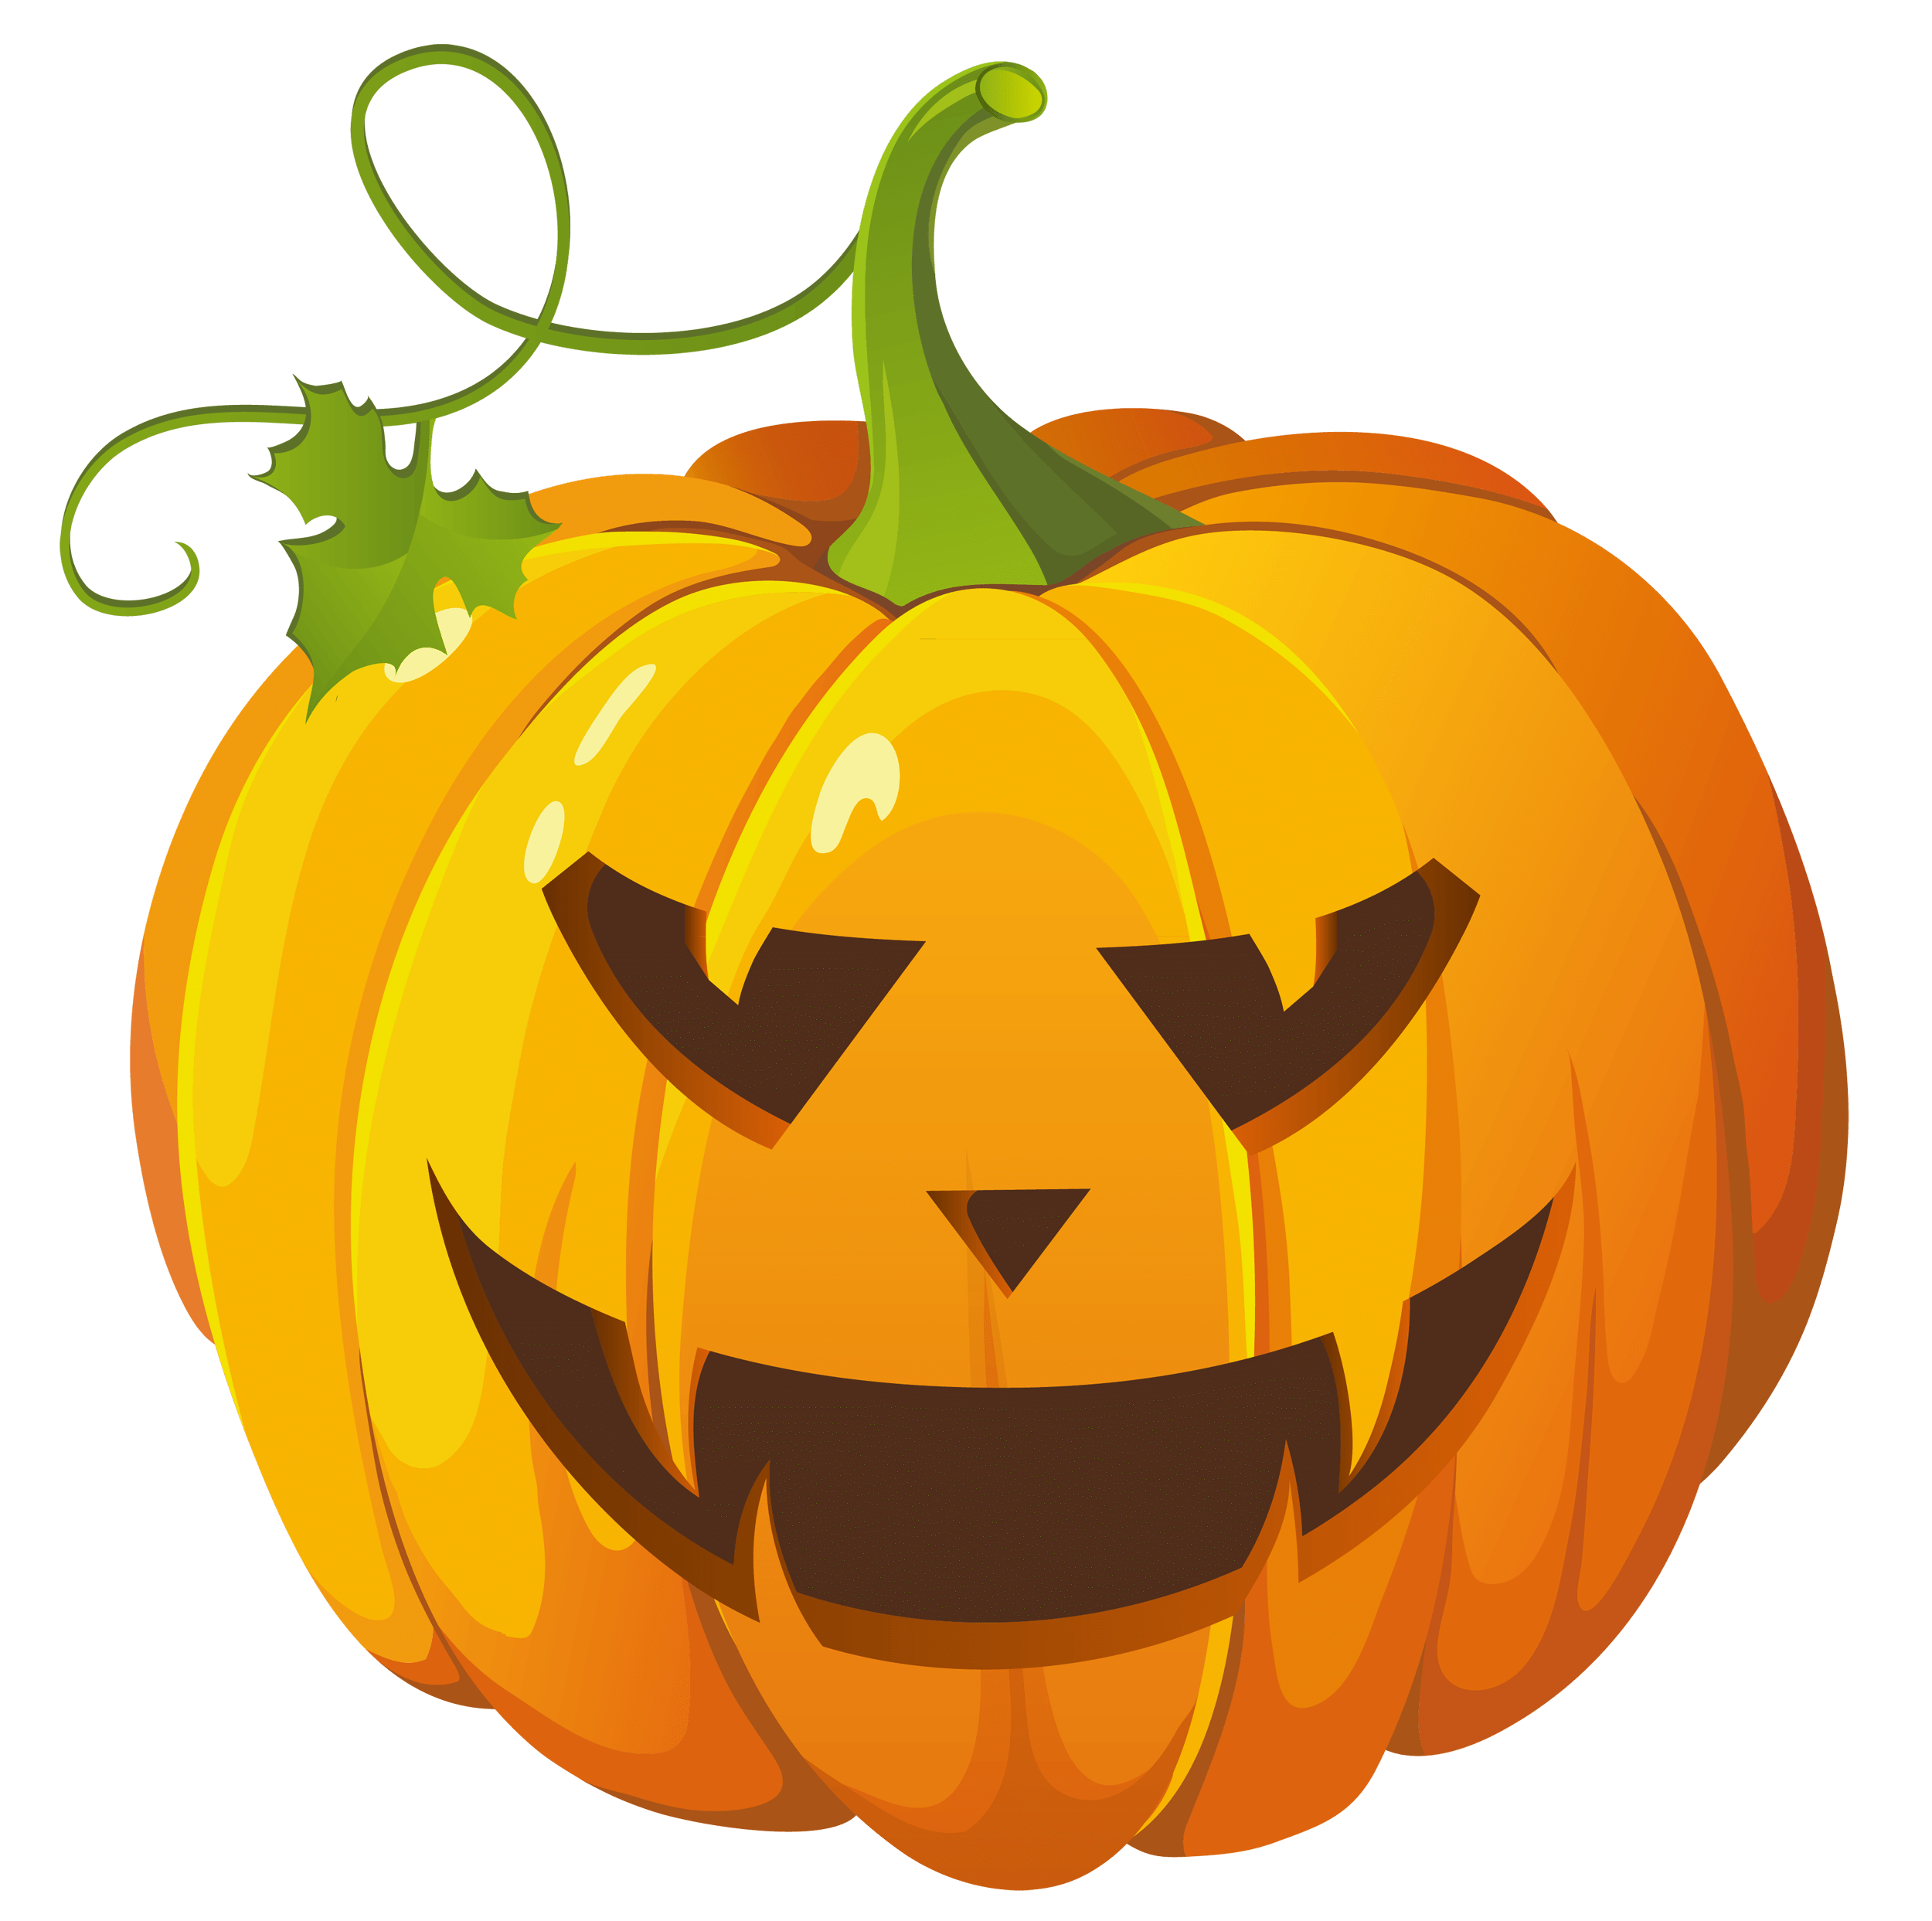 Halloween png. Pumpkin transparent stickpng download